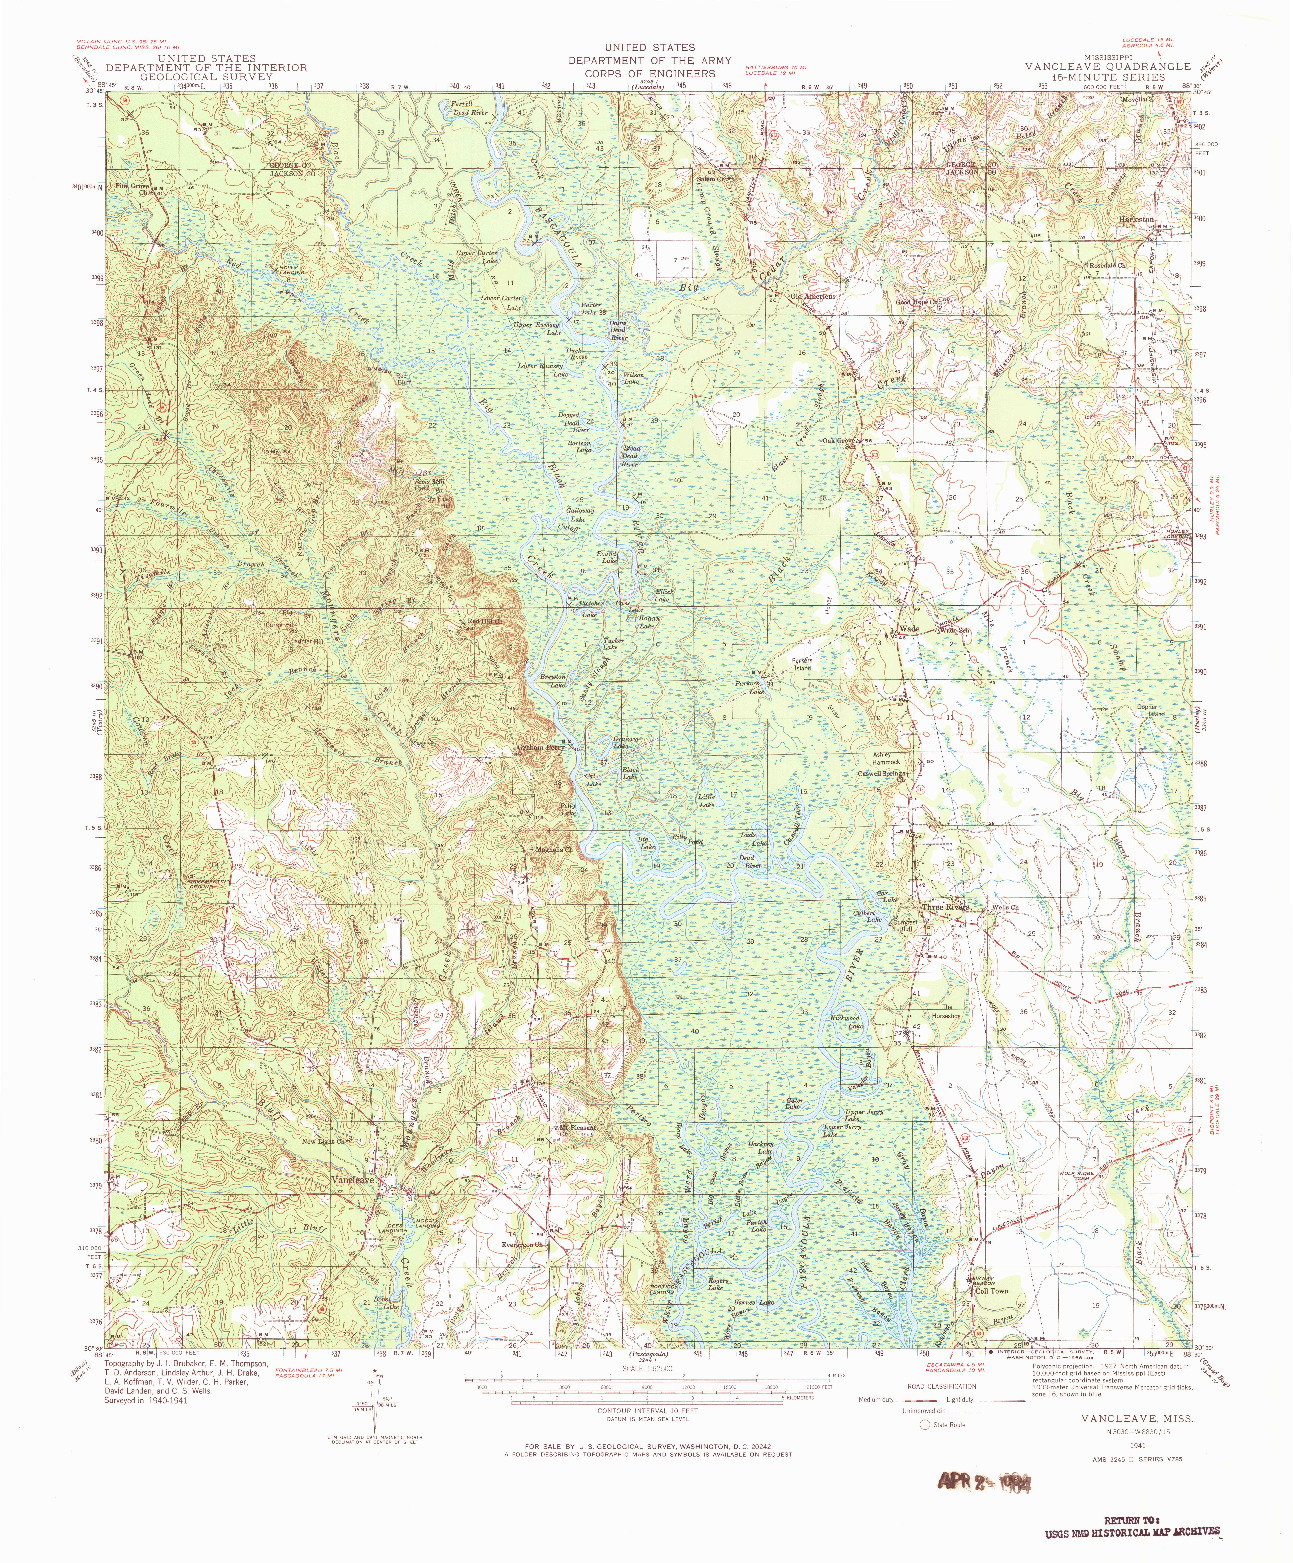 USGS 1:62500-SCALE QUADRANGLE FOR VANCLEAVE, MS 1941